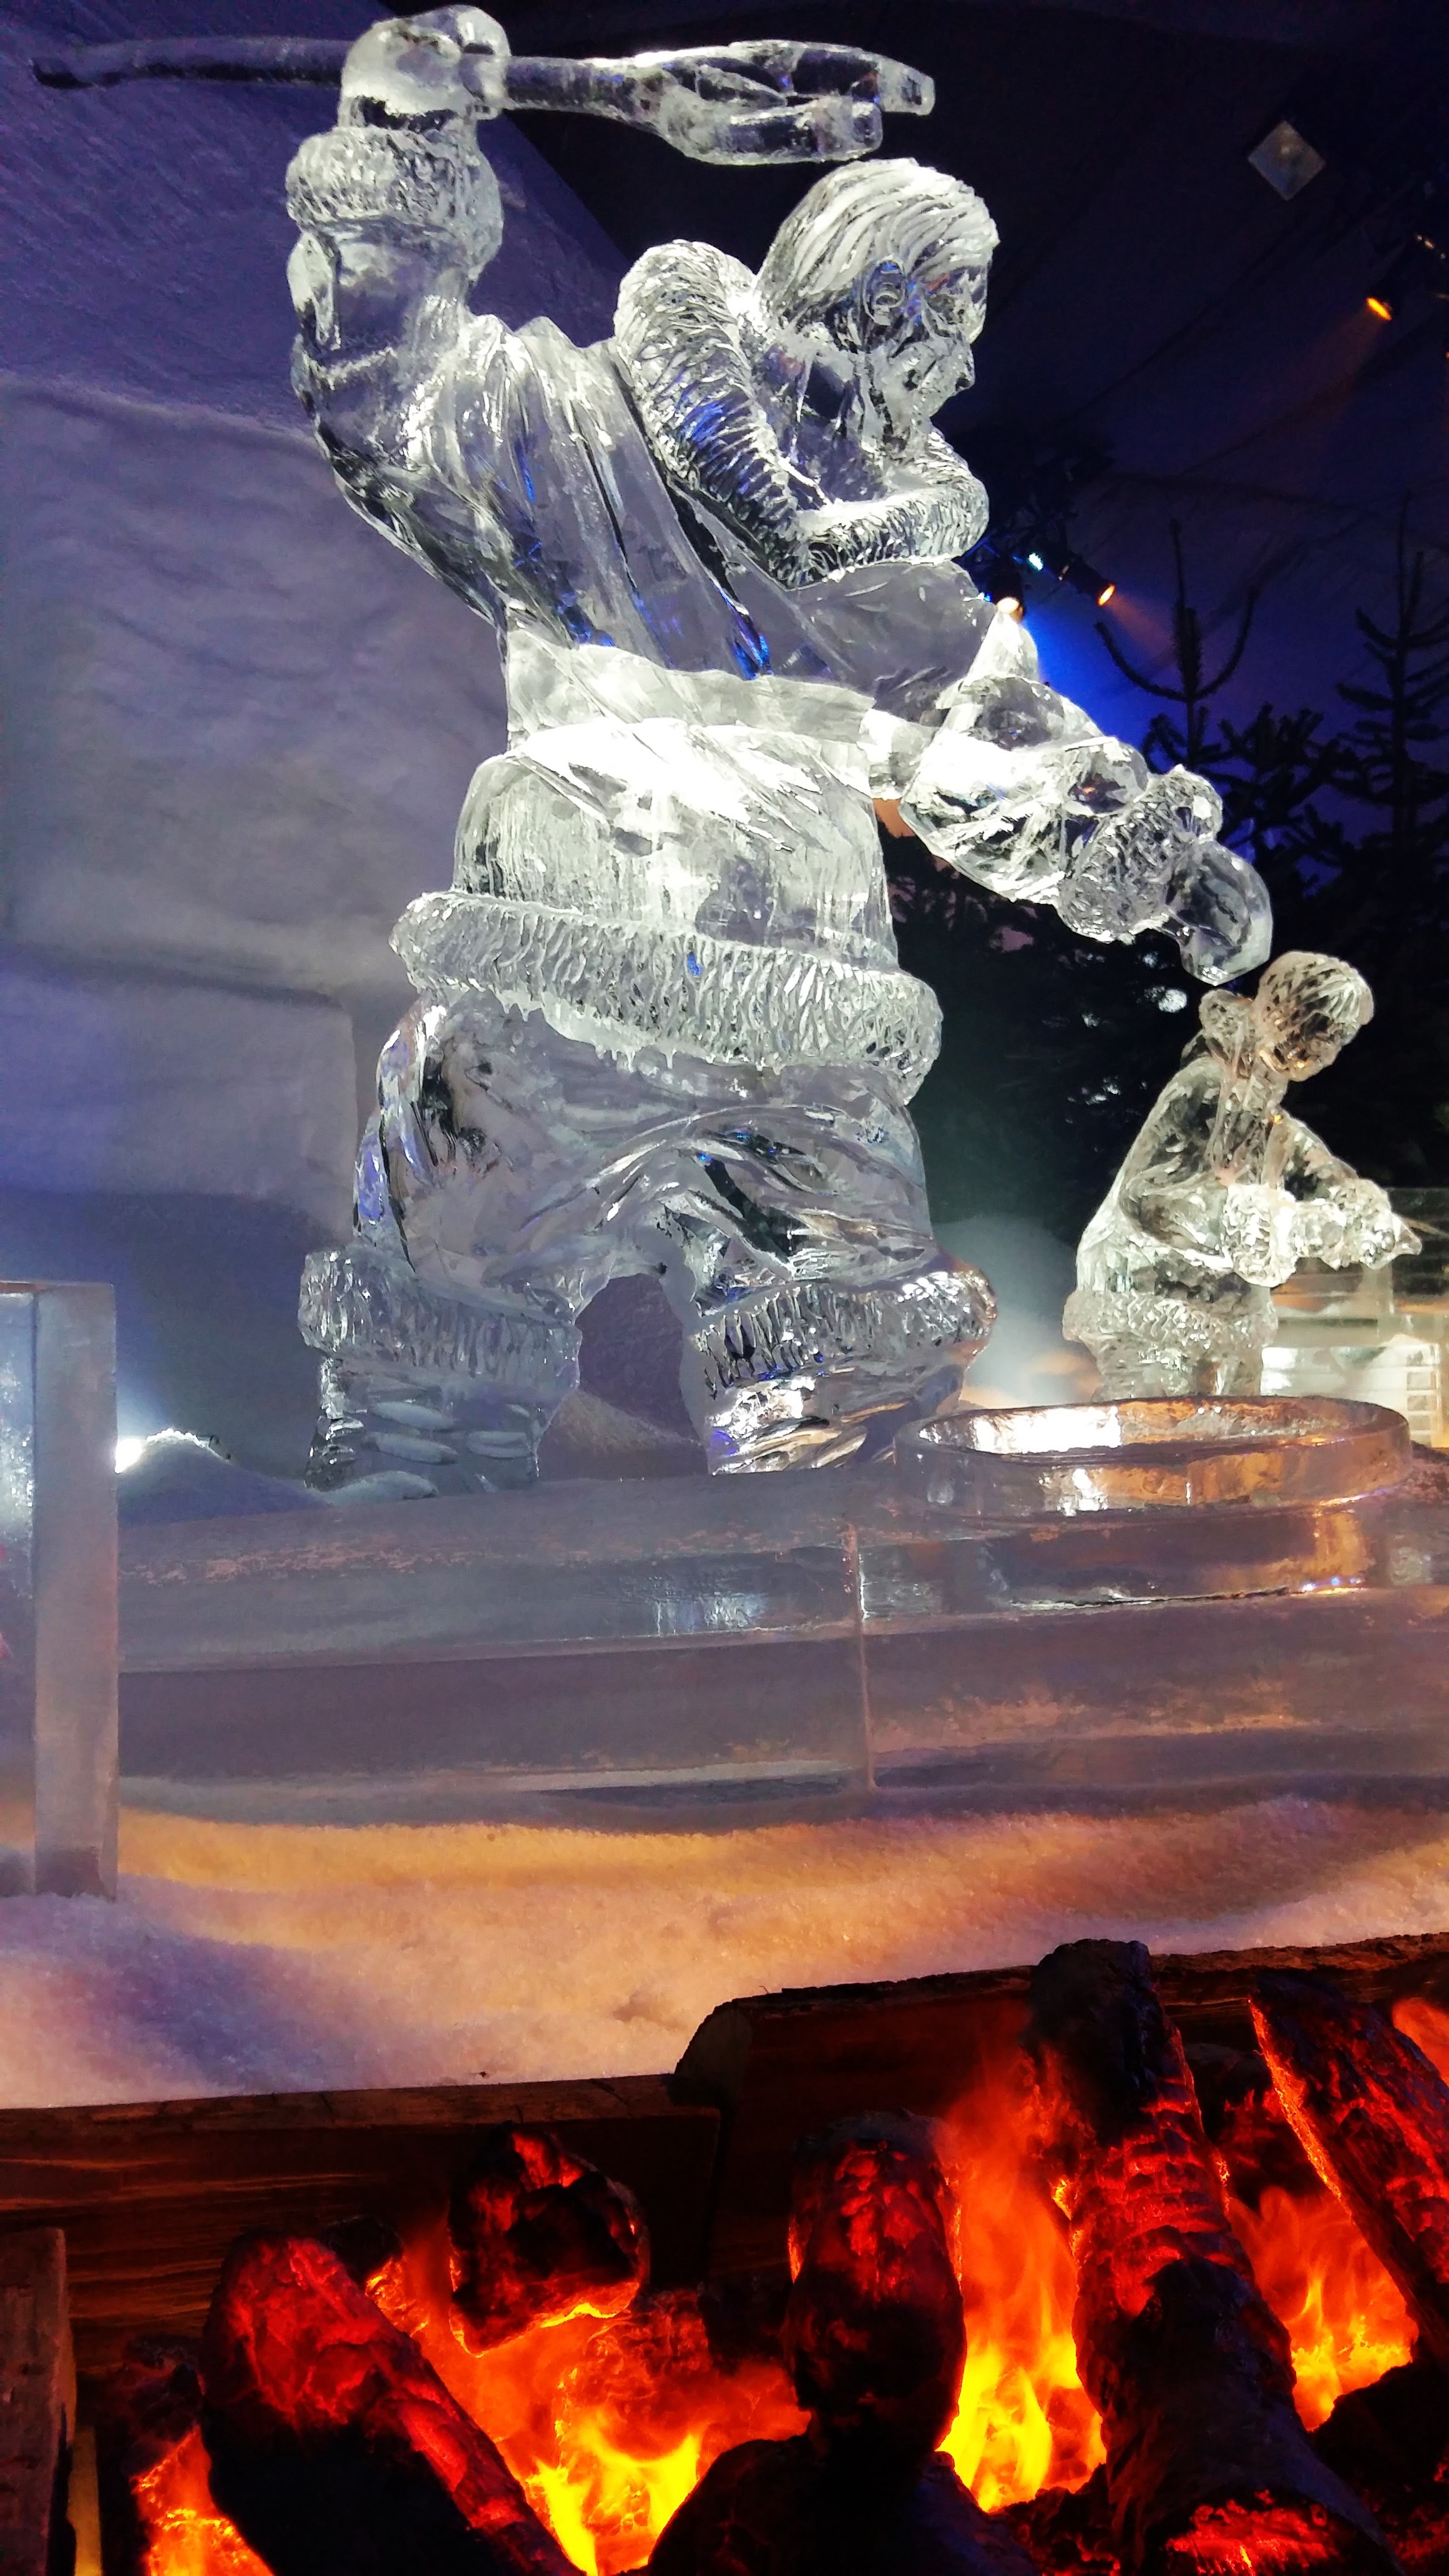 Dimplex Opti-myst Fire and Ice at Winter Wonderland